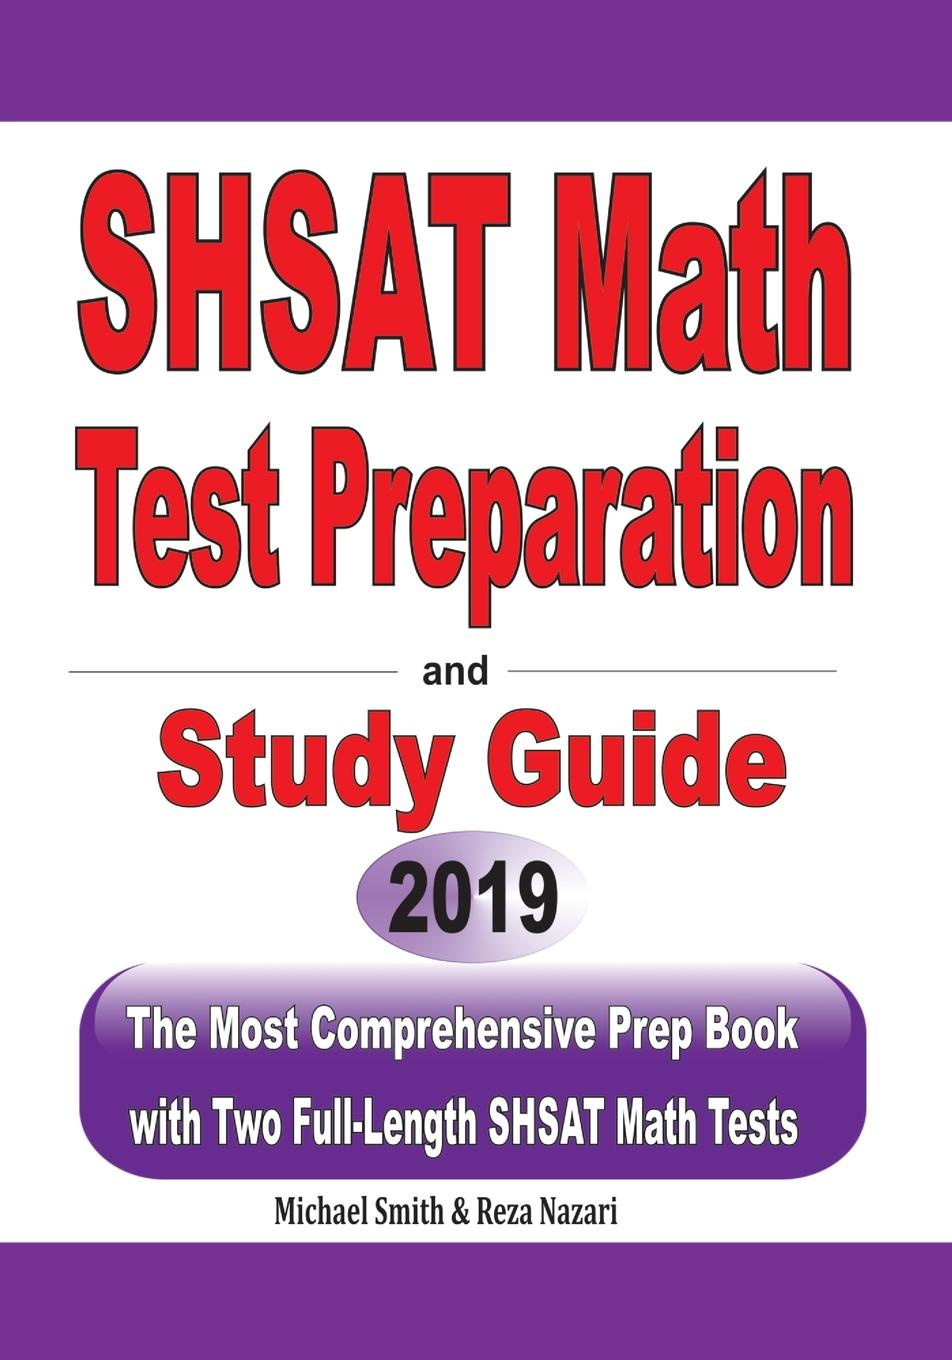 Michael Smith, Reza Nazari SHSAT Math Test Preparation and study guide. The Most Comprehensive Prep Book with Two Full-Length SHSAT Math Tests